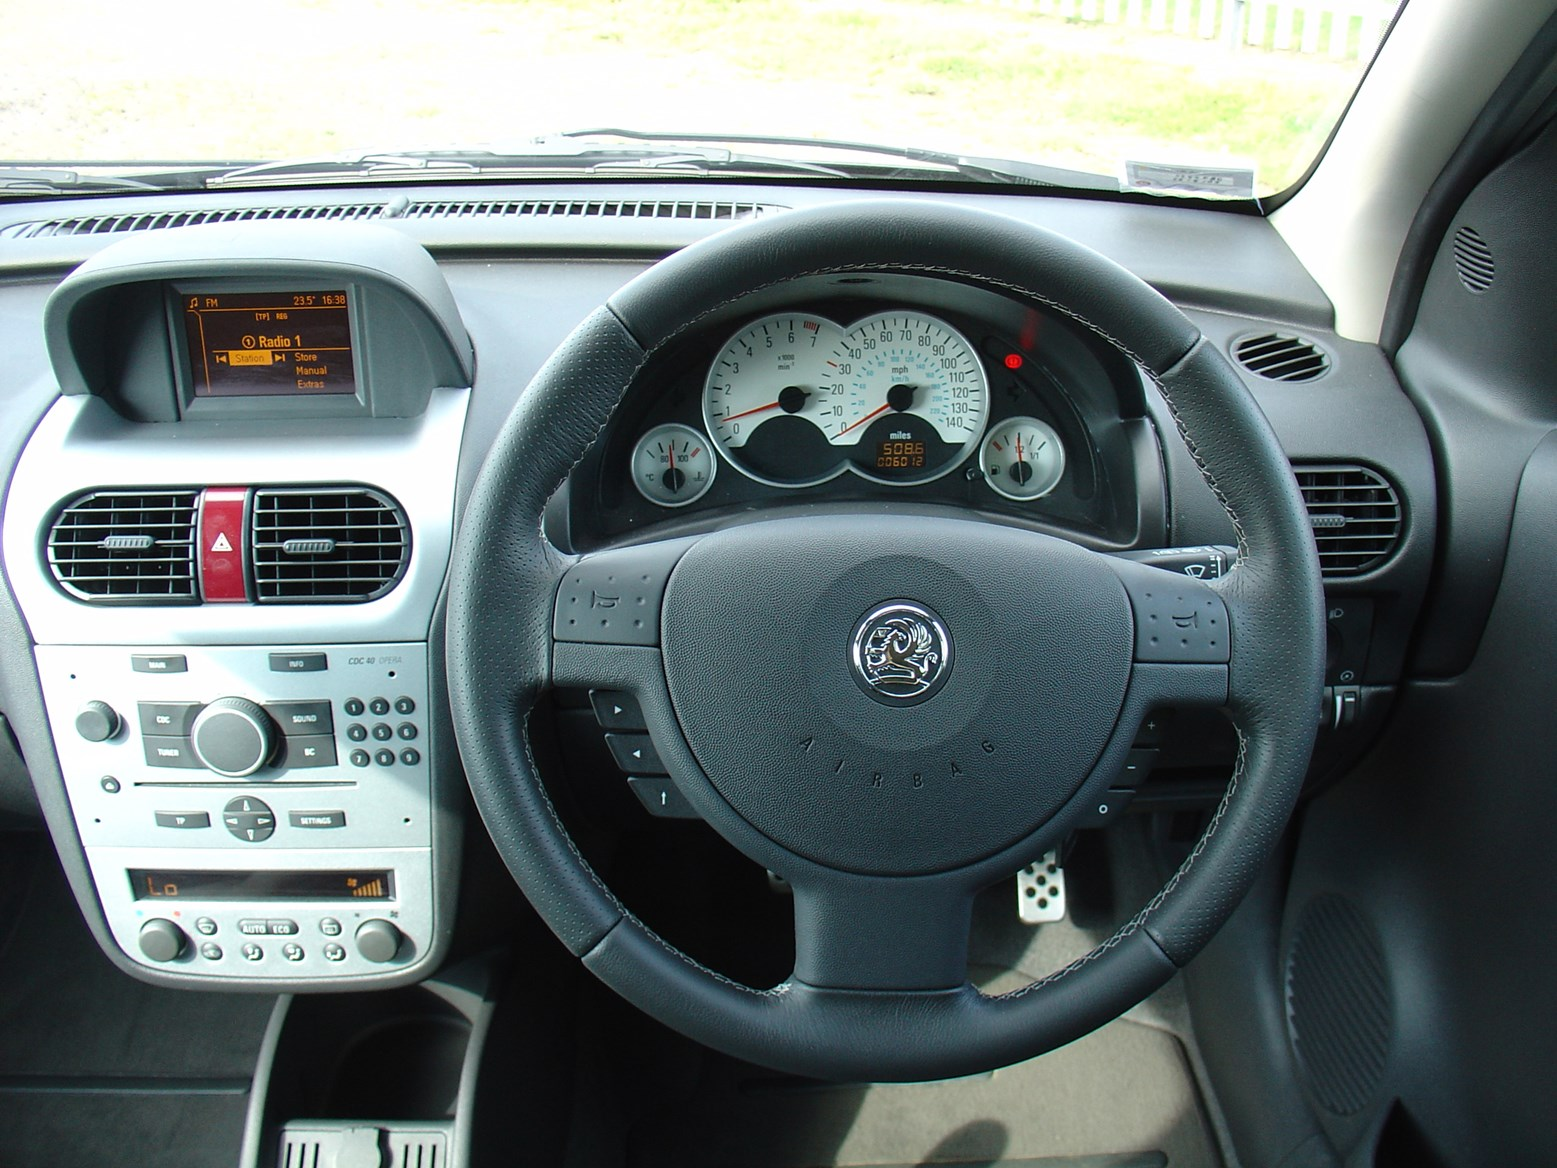 vauxhall corsa hatchback 2003 2006 features equipment. Black Bedroom Furniture Sets. Home Design Ideas